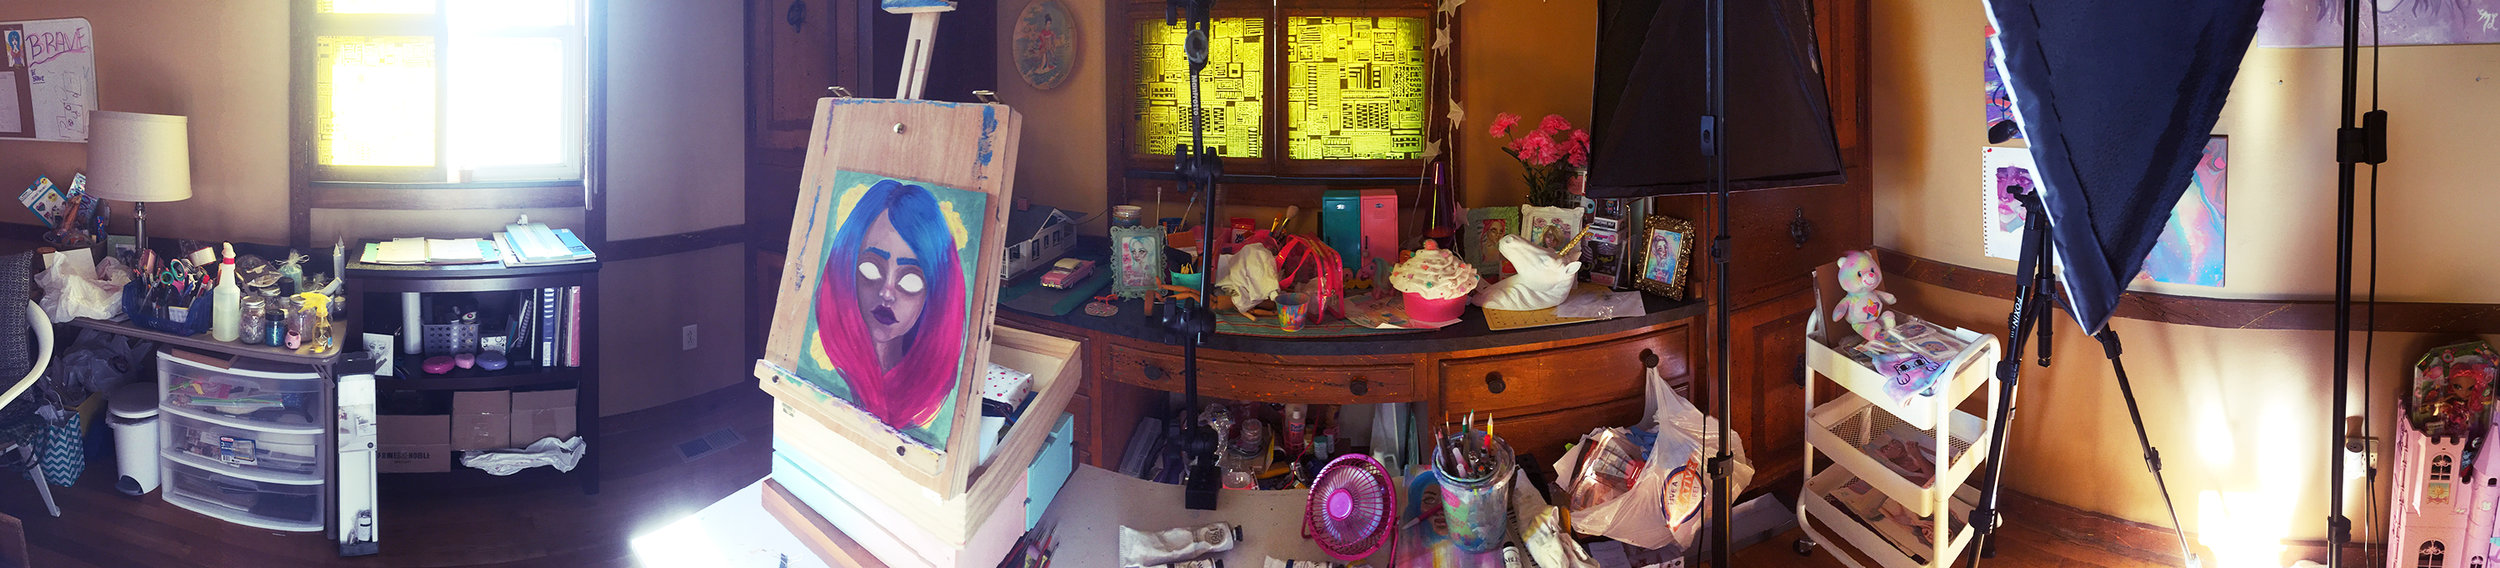 art studio maceylou work space artist tennessee 2